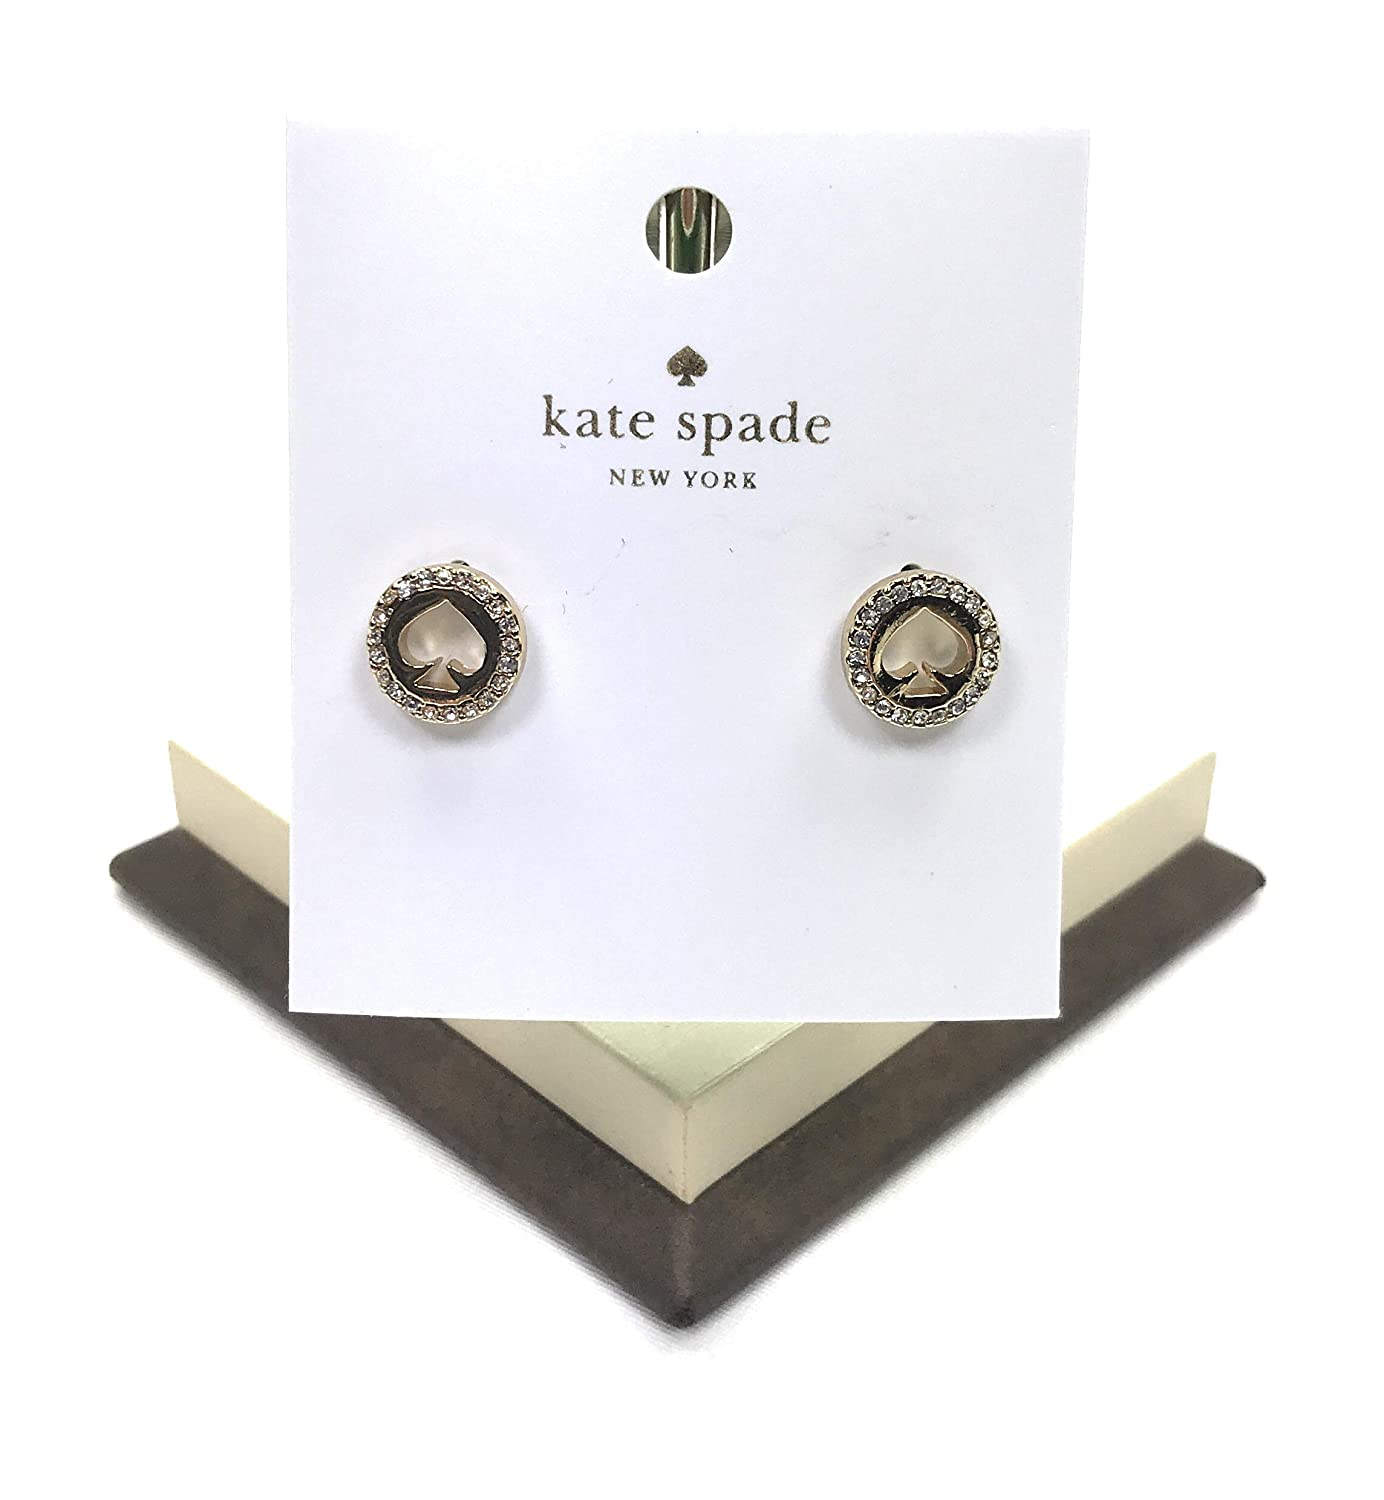 086d8fd2bf9be8 Amazon.com: kate spade new york stud earrings Spot the Spade Gold Plated  with Pave Crystals: Jewelry